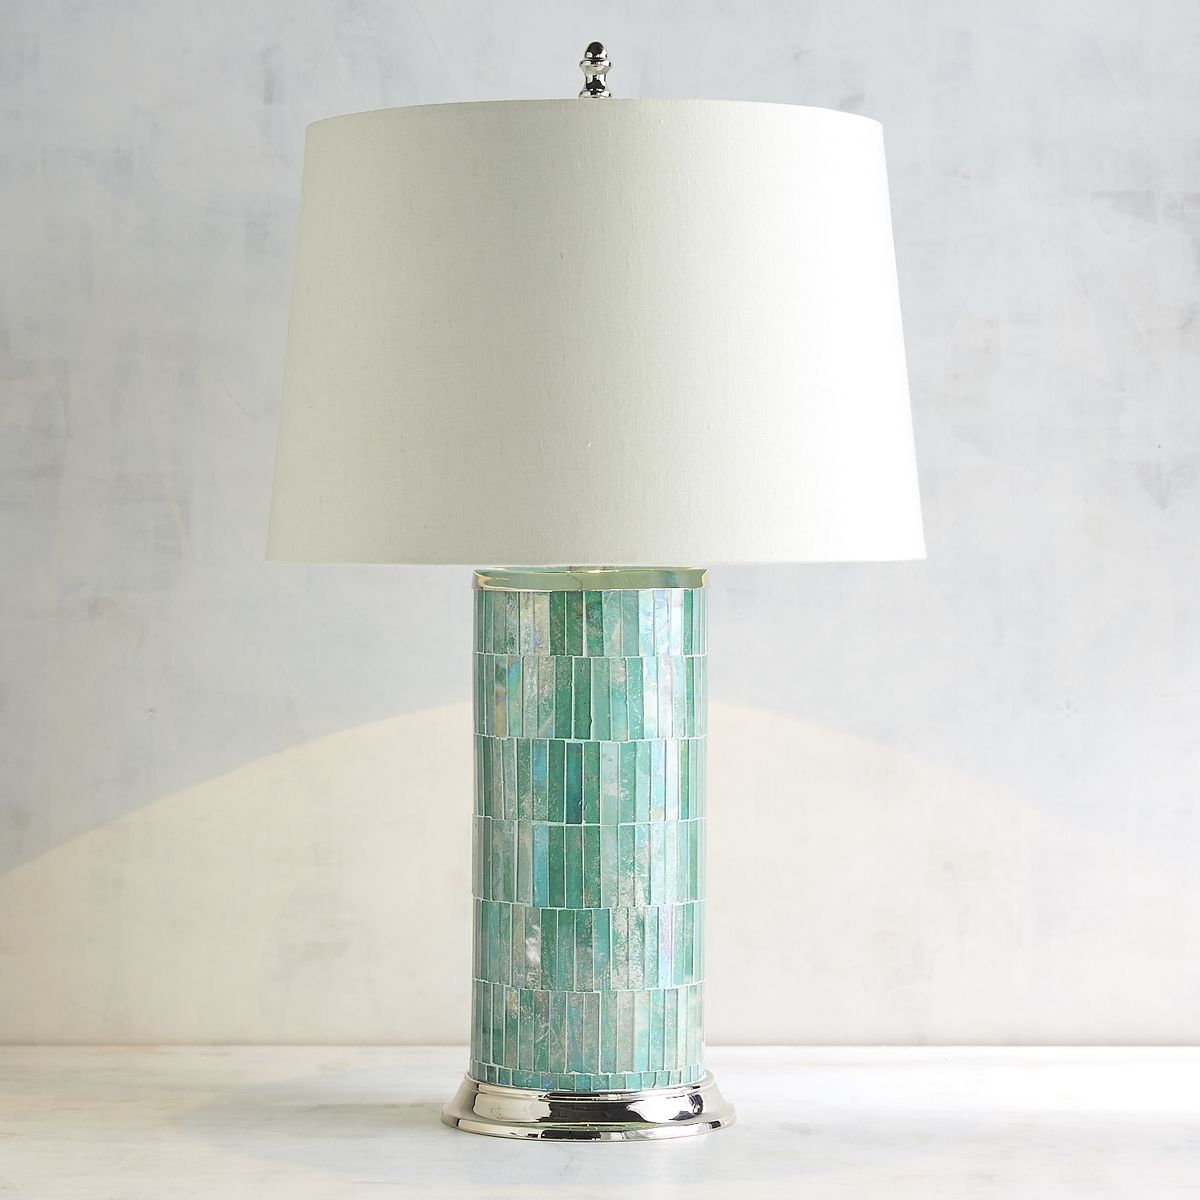 lamp designs by kickstarter original projects flowing earthy bite aqua